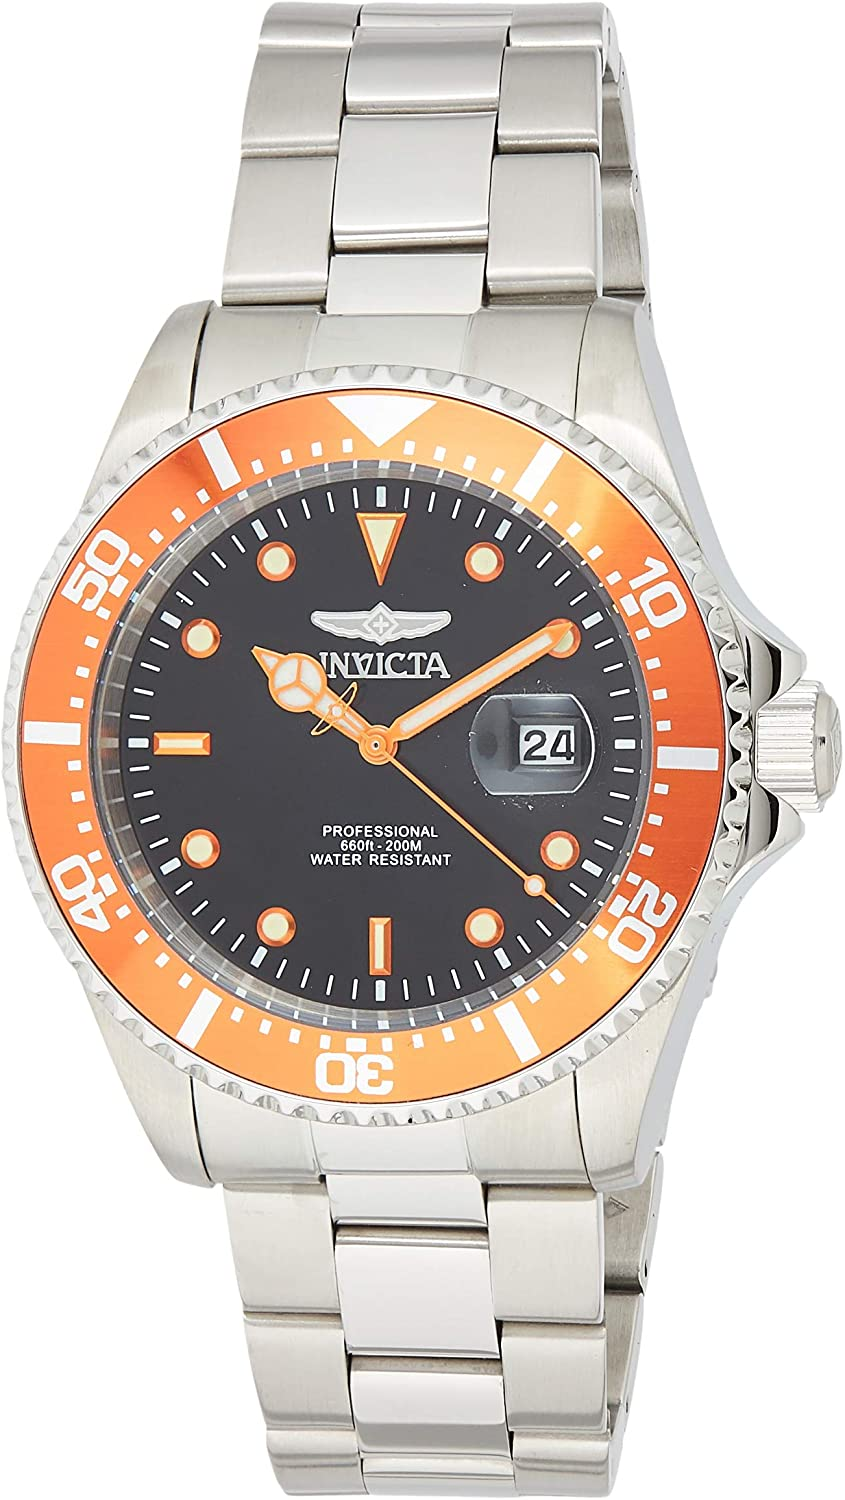 Invicta Men s Pro Diver Quartz Diving Watch with Stainless-Steel Strap, Silver, 9 Model 22022